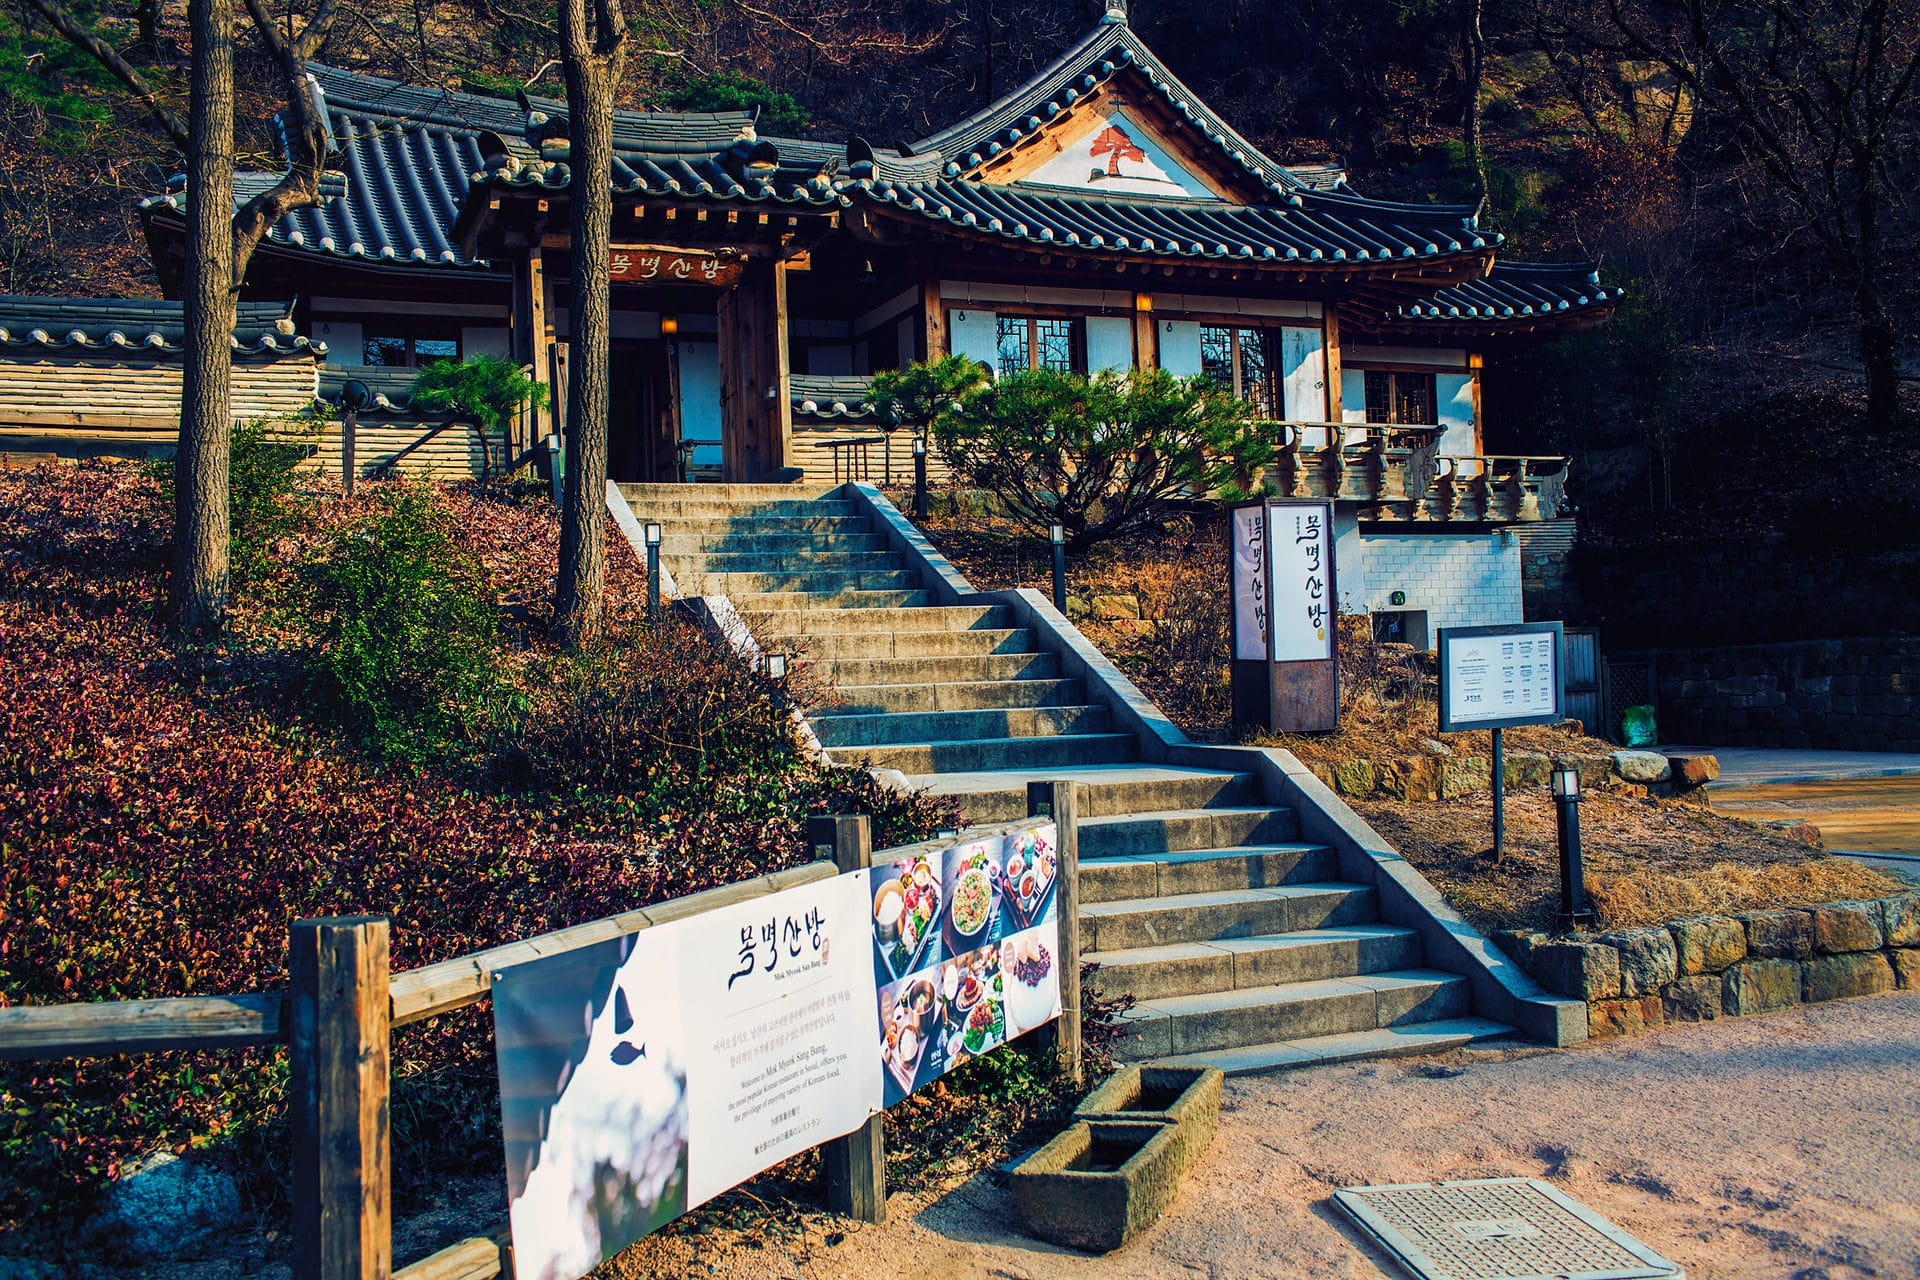 Mokmyeoksanbang Restaurant near N Seoul Tower